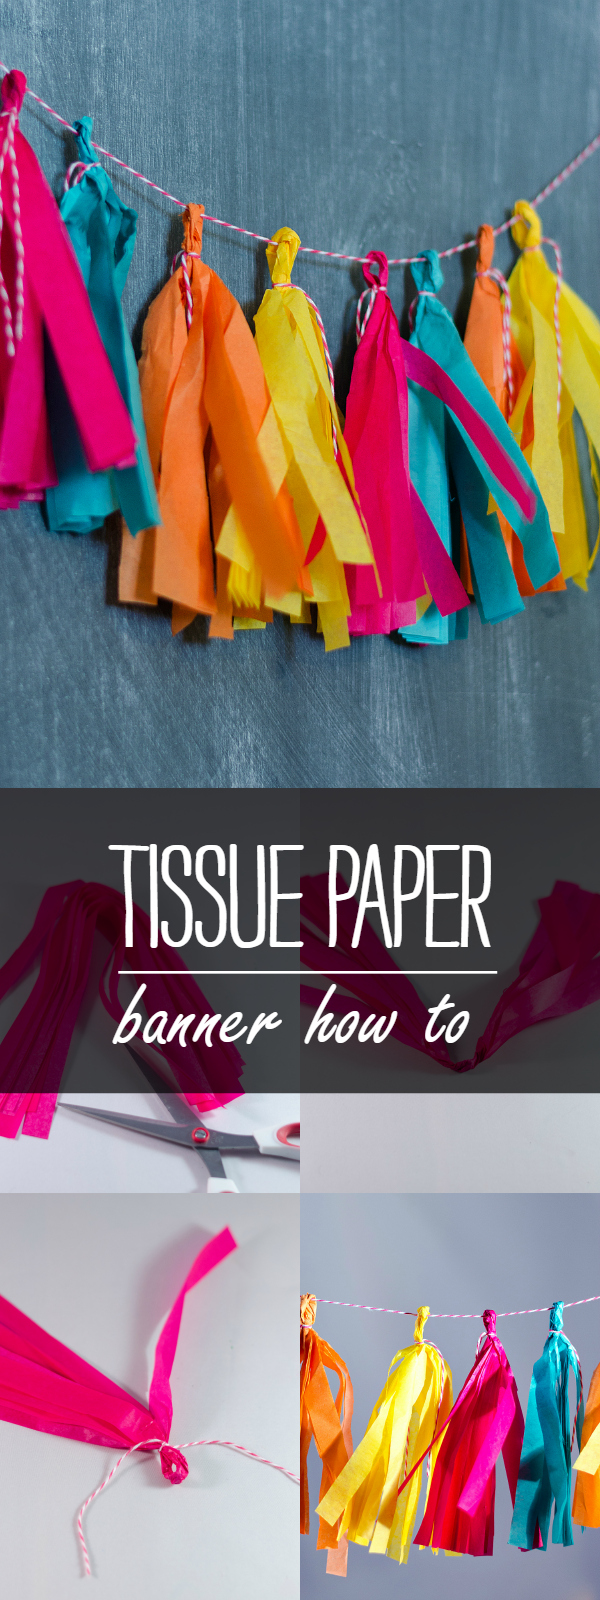 How To Make A Tissue Paper Banner